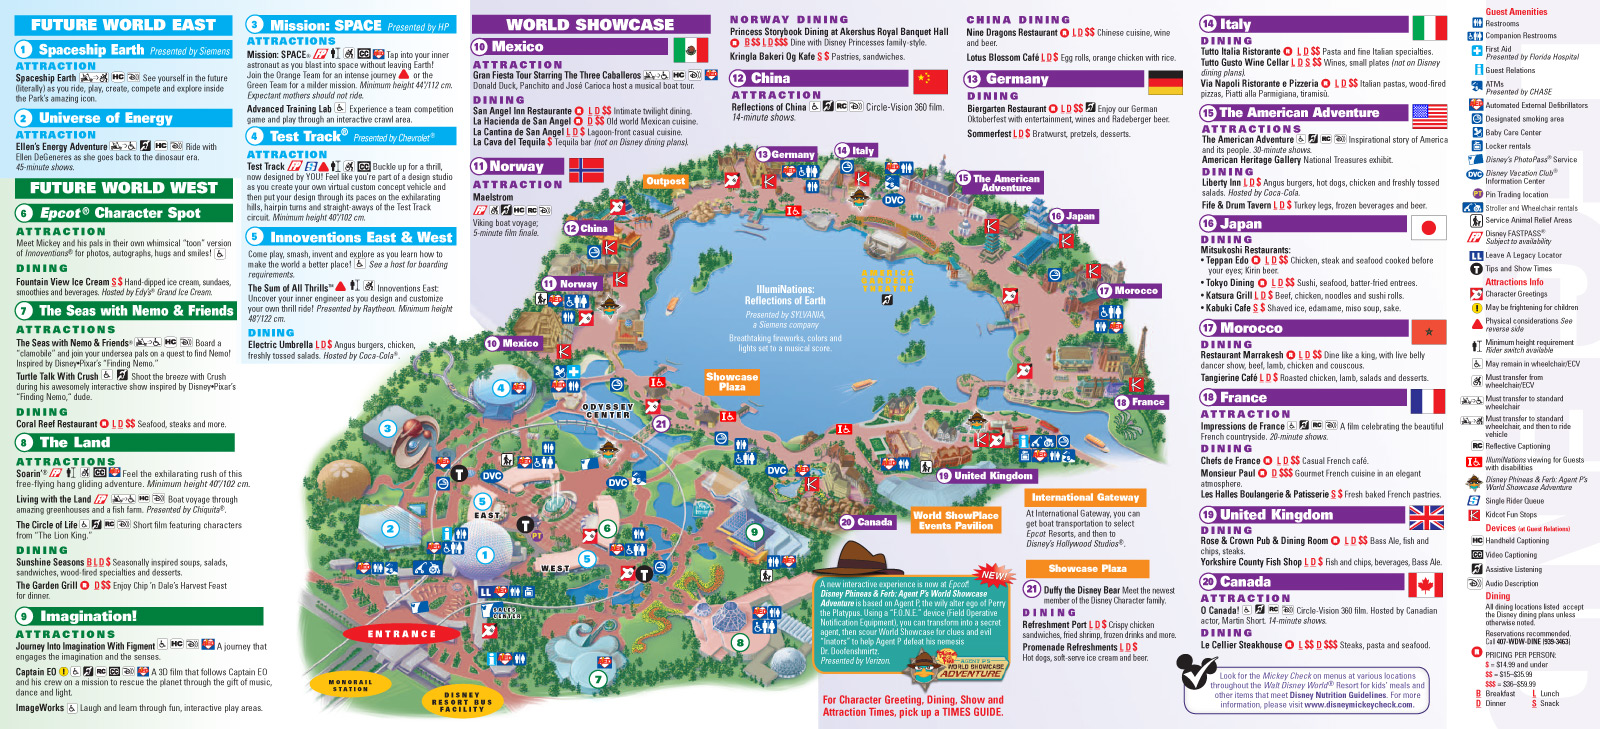 Disney World Epcot Map 2013